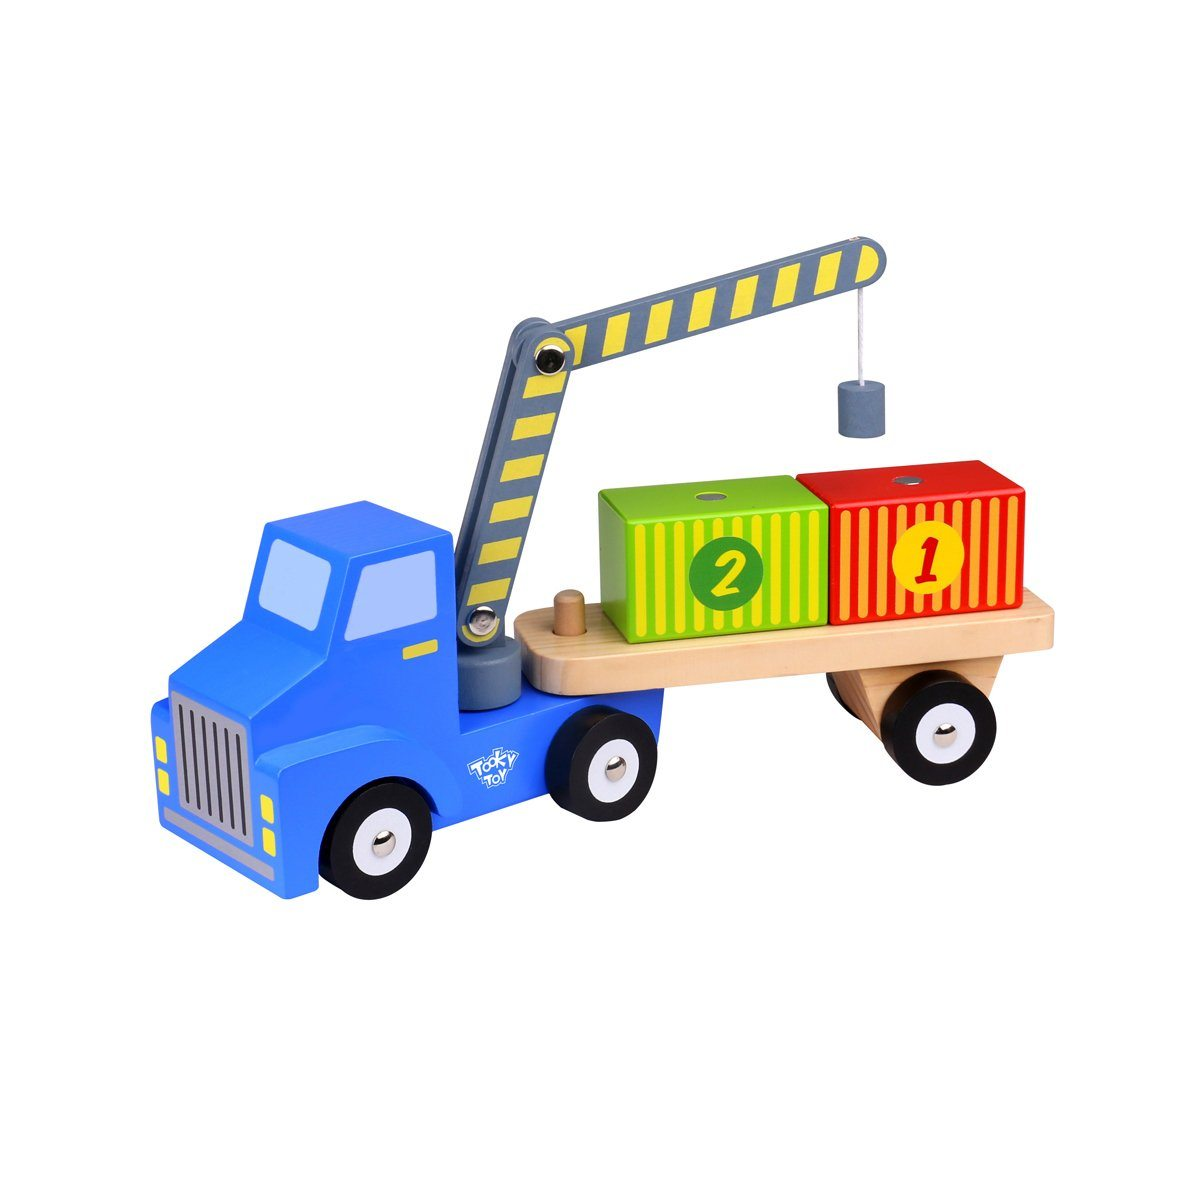 Carrier Truck with Containers